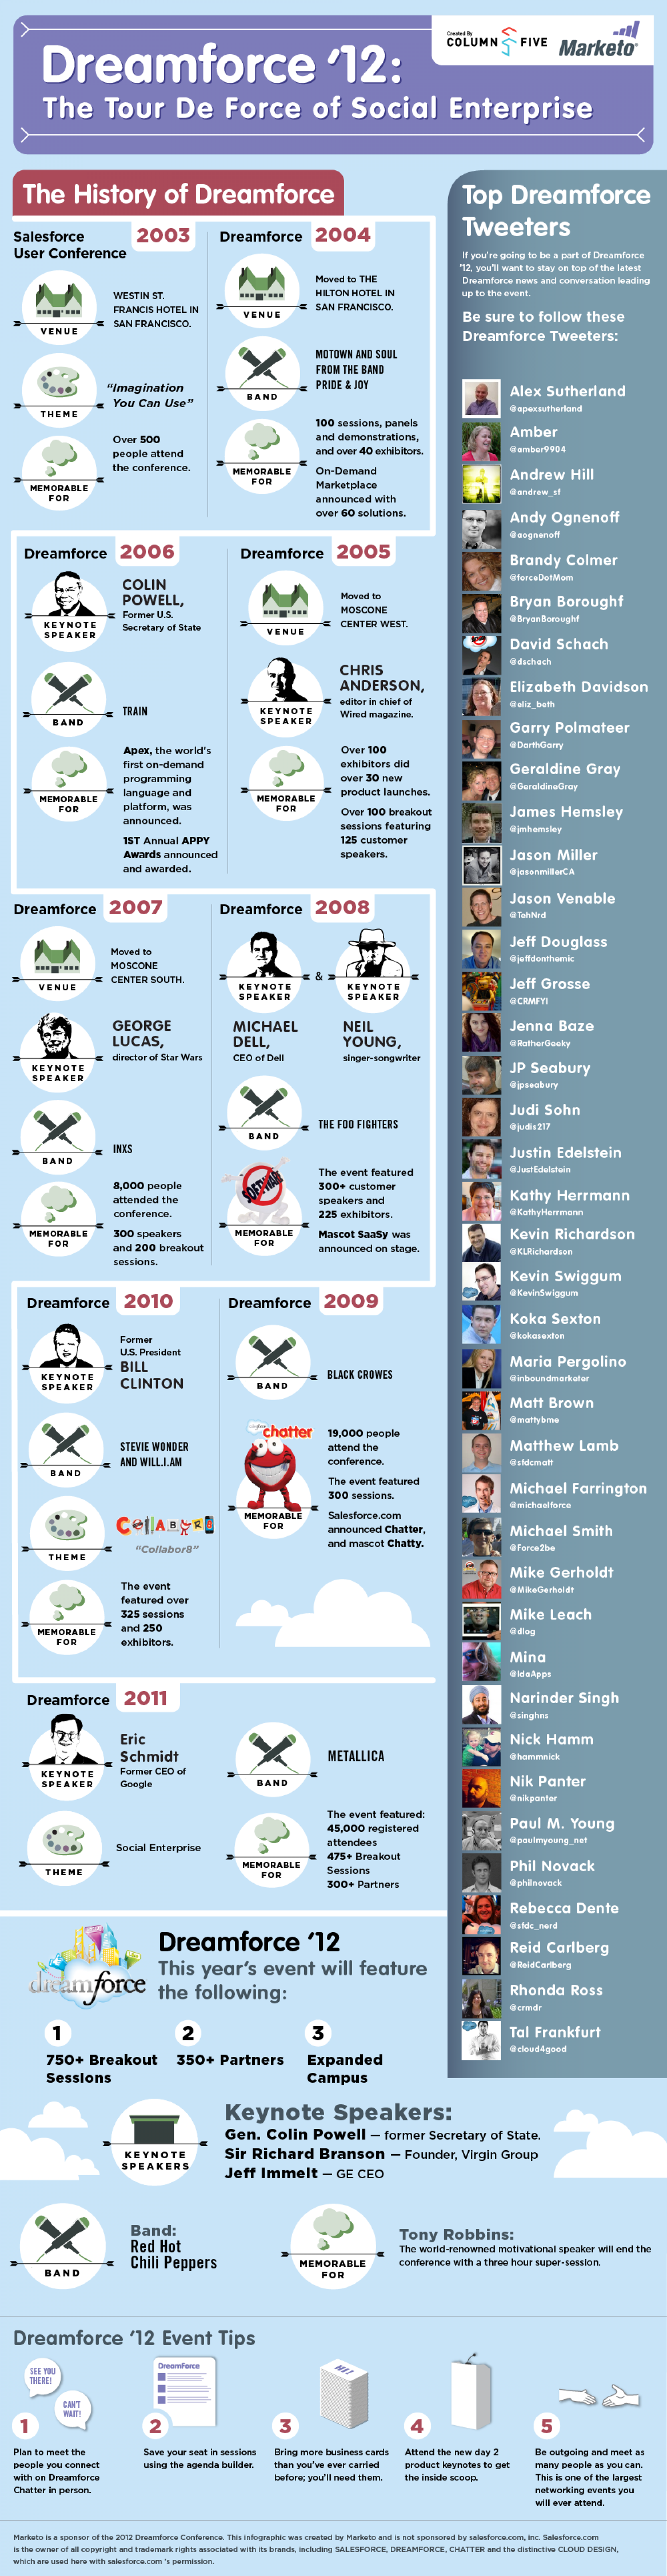 Dreamforce '12: The Tour de Force of Social Enterprise  Infographic